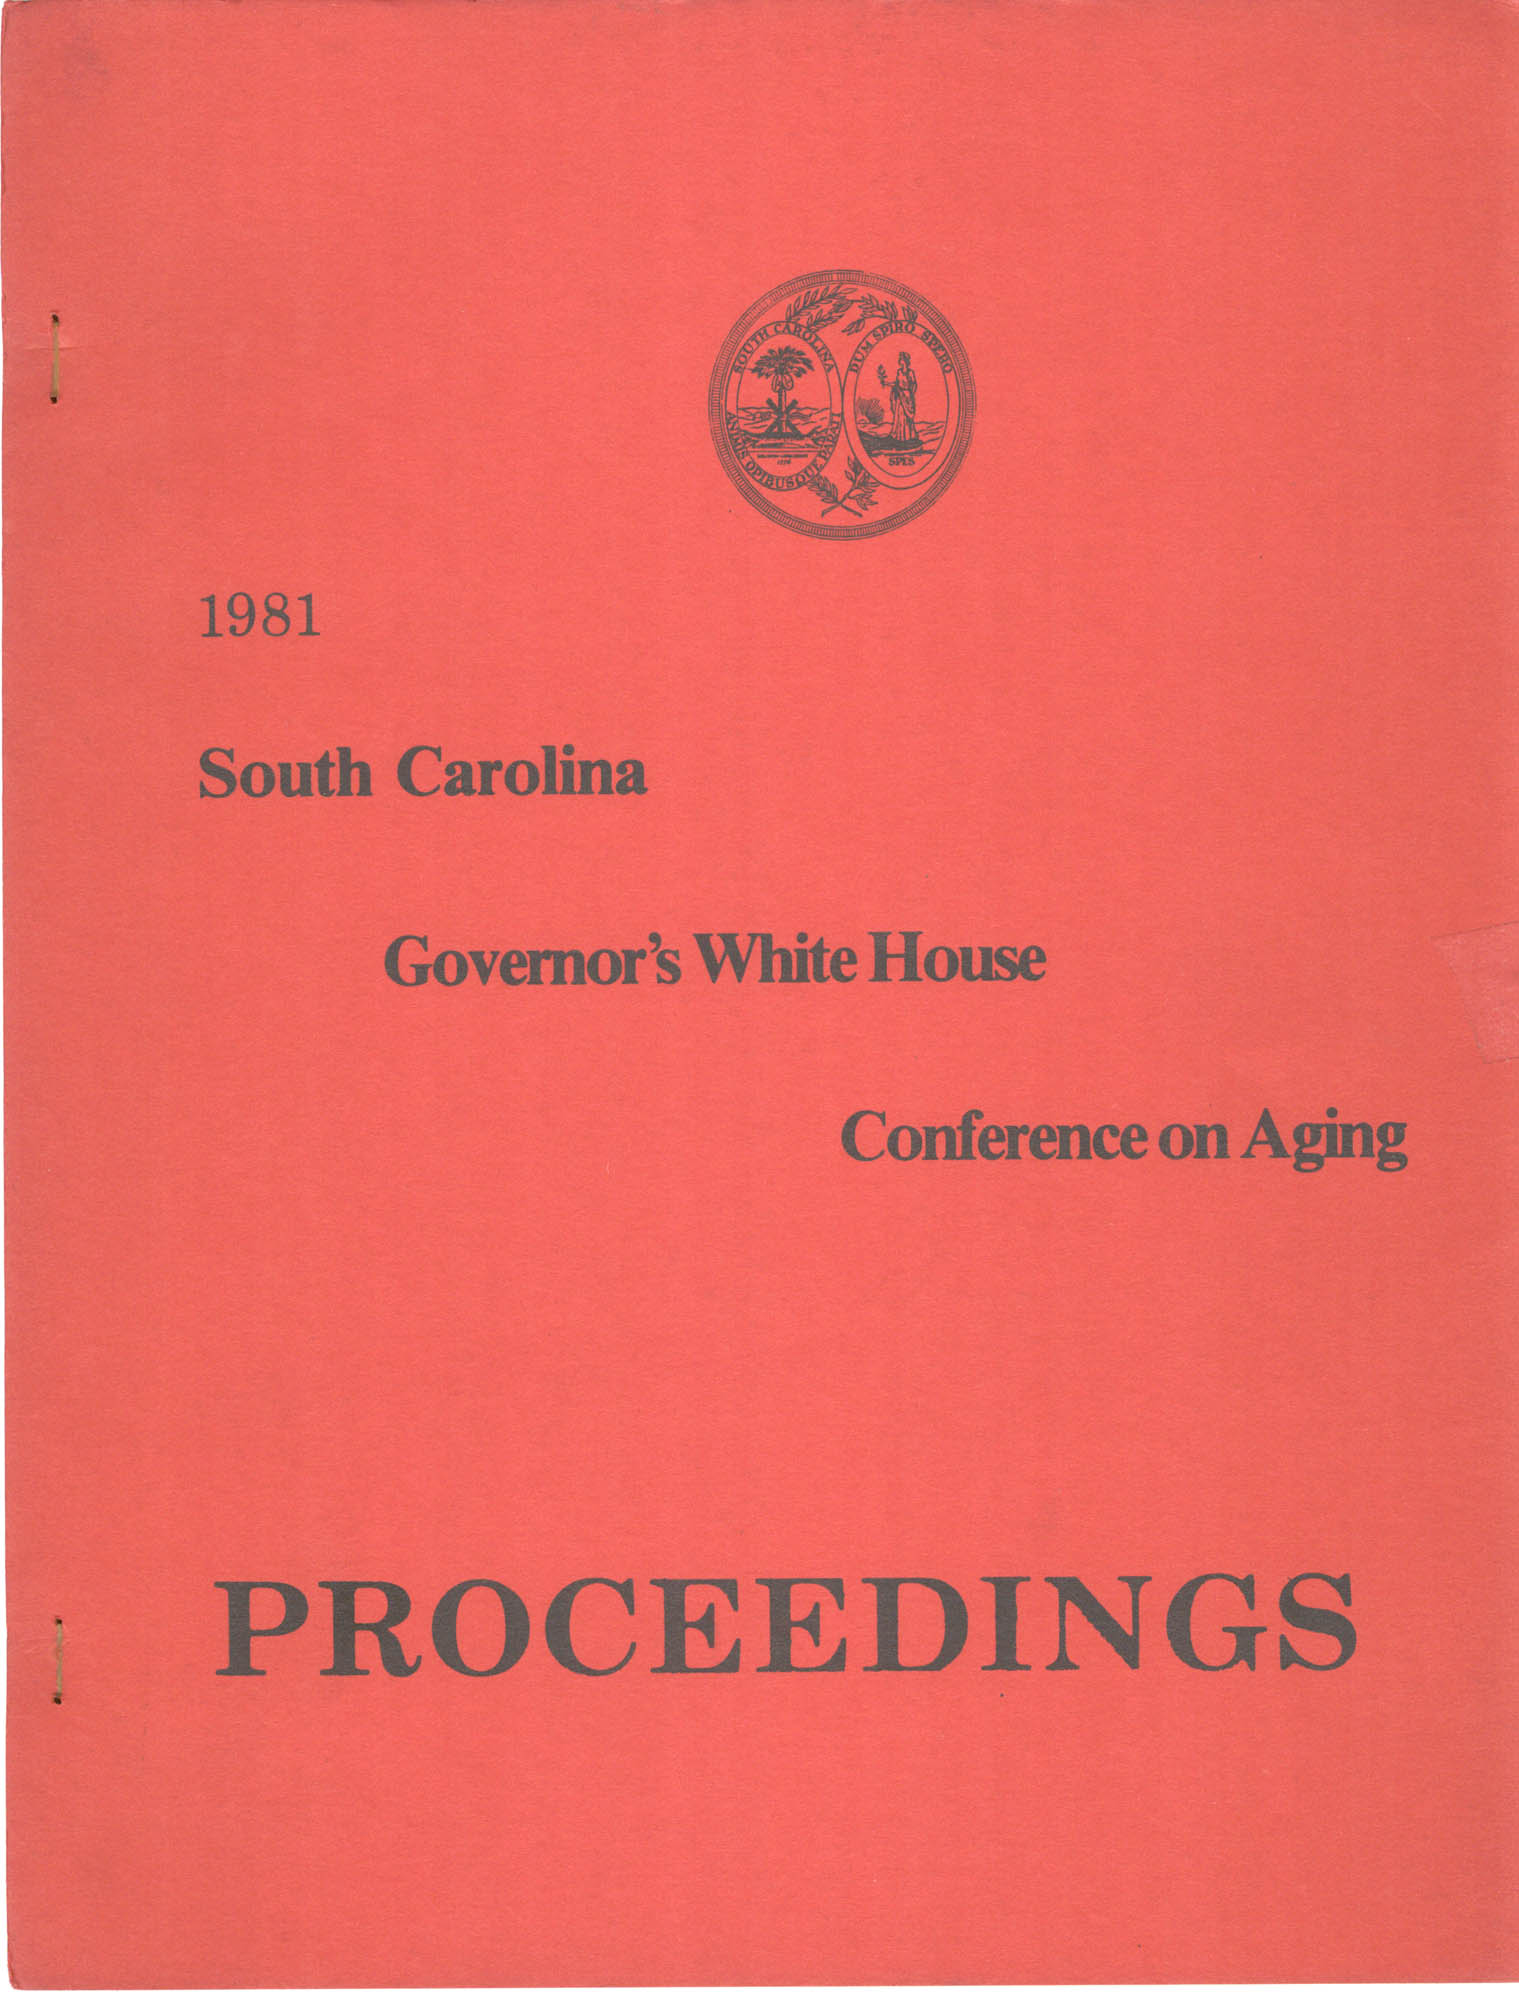 South Carolina Governor's White House Conference on Aging Proceedings, 1981, Front Cover